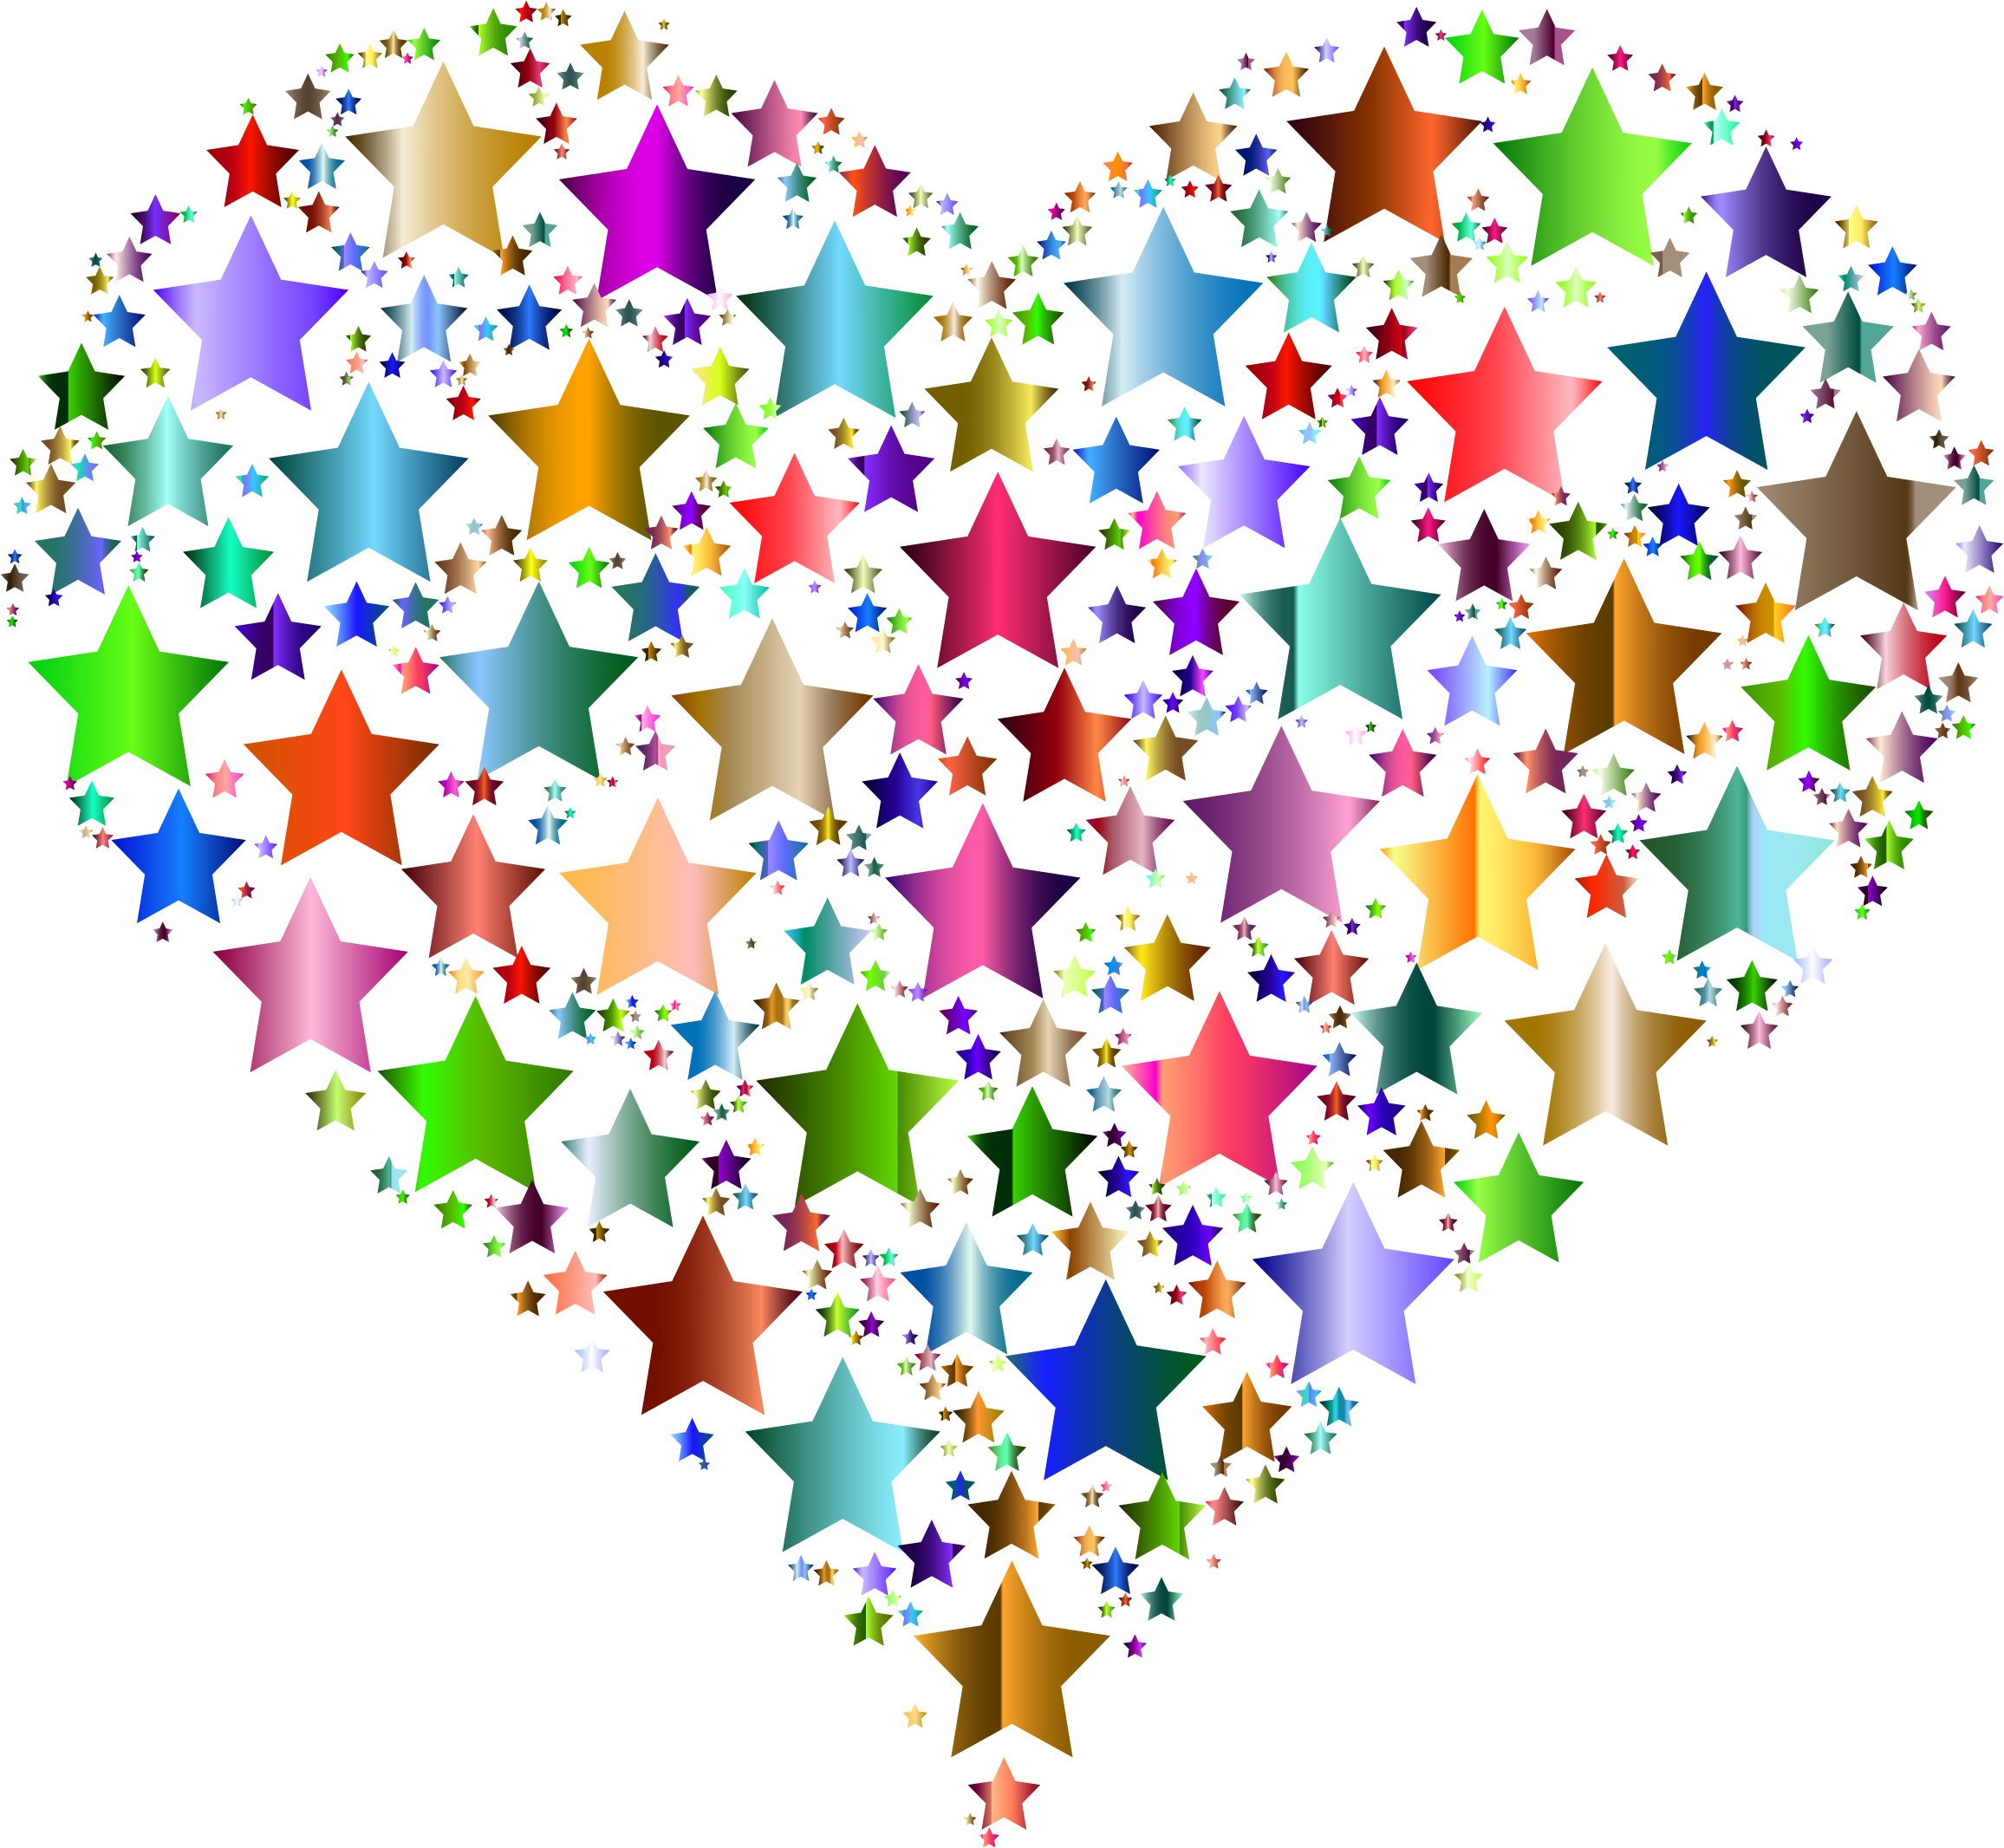 Hearts and stars clipart graphic royalty free library Hearts and stars clipart - ClipartFest graphic royalty free library